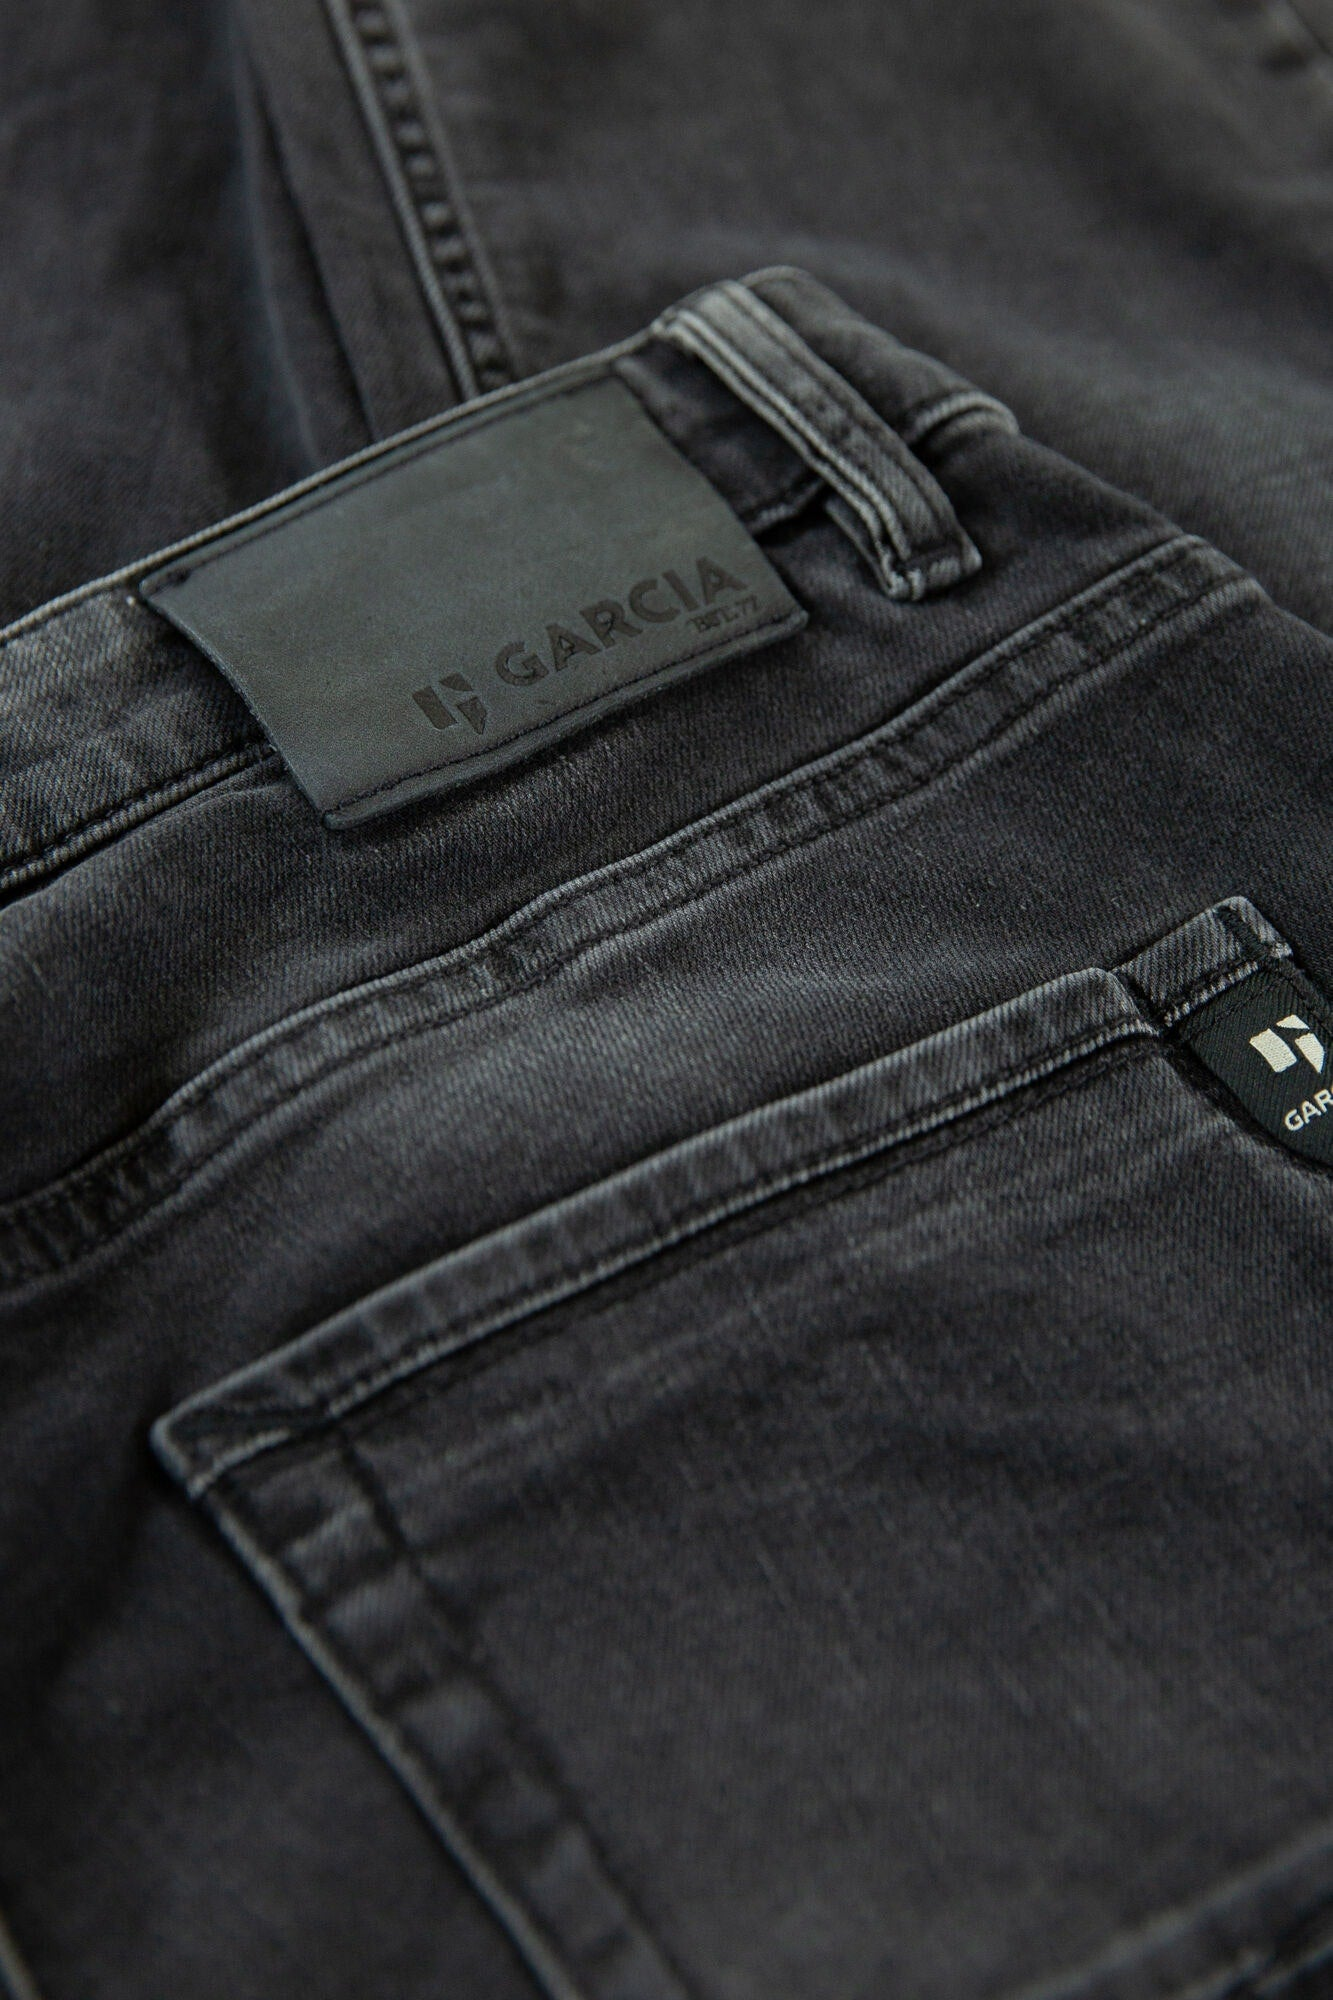 GARCIA Jeans Russo Medium Used Tapared Fit